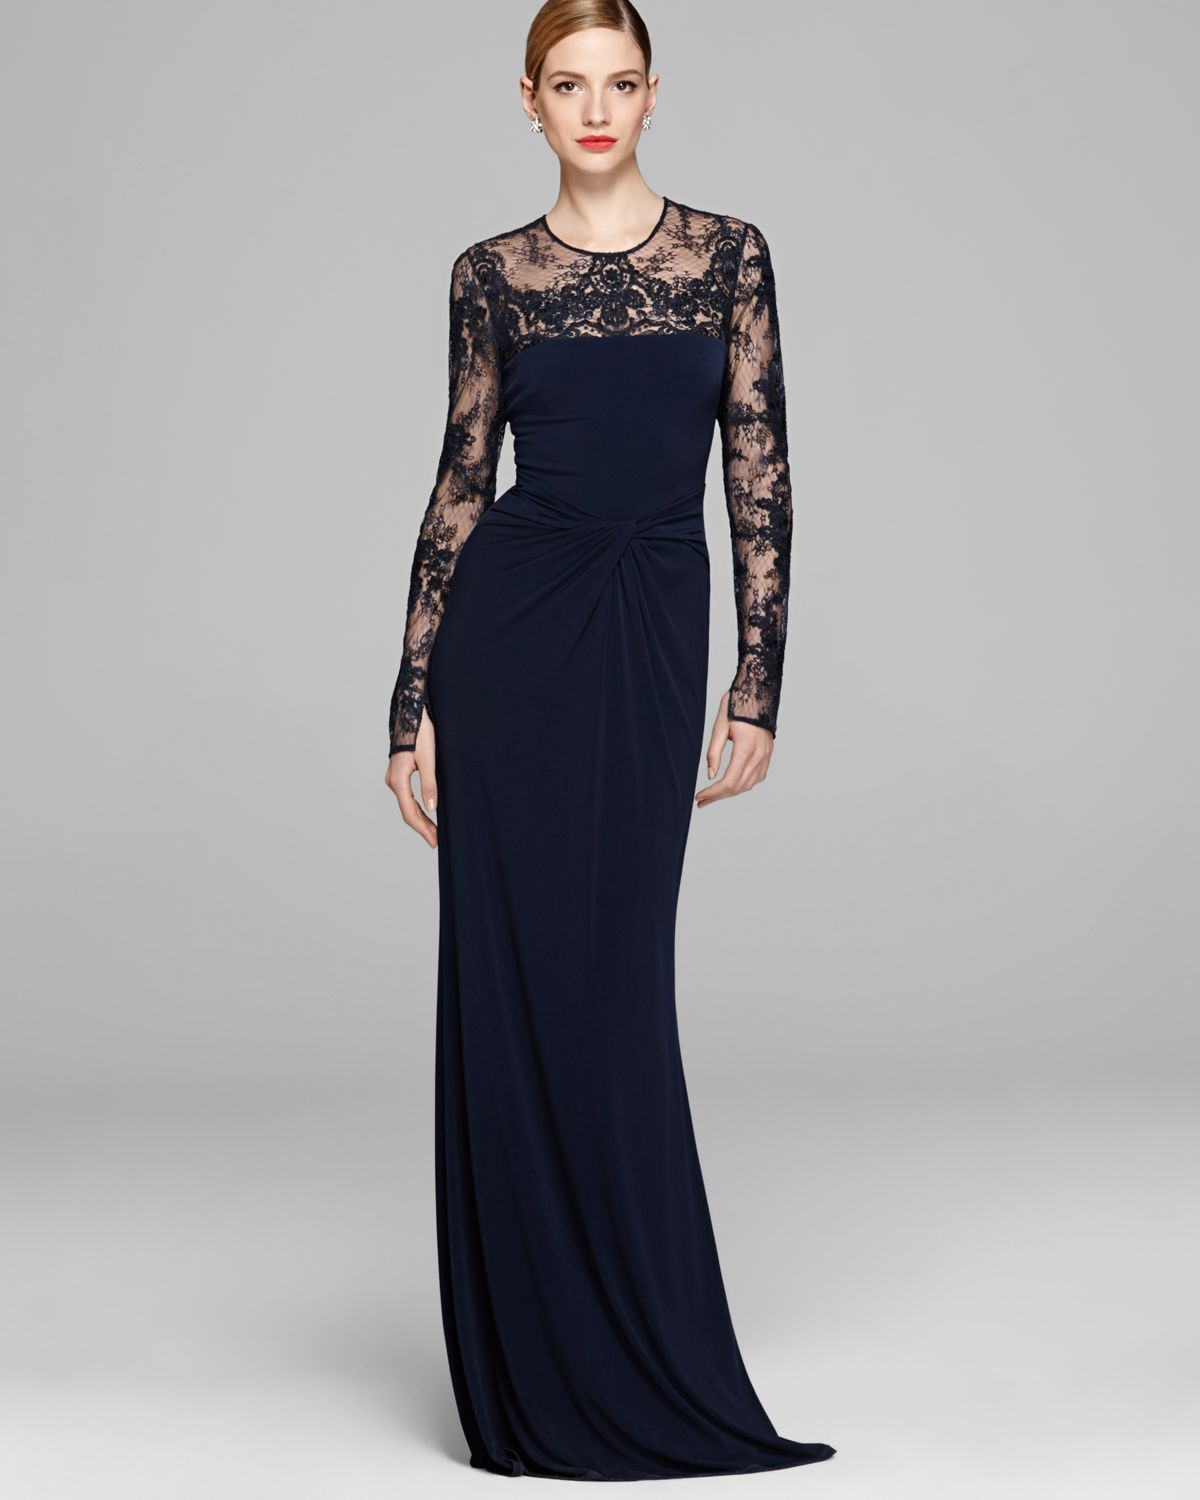 Lyst - David Meister Gown Long Sleeve Illusion Jersey with Drape ...